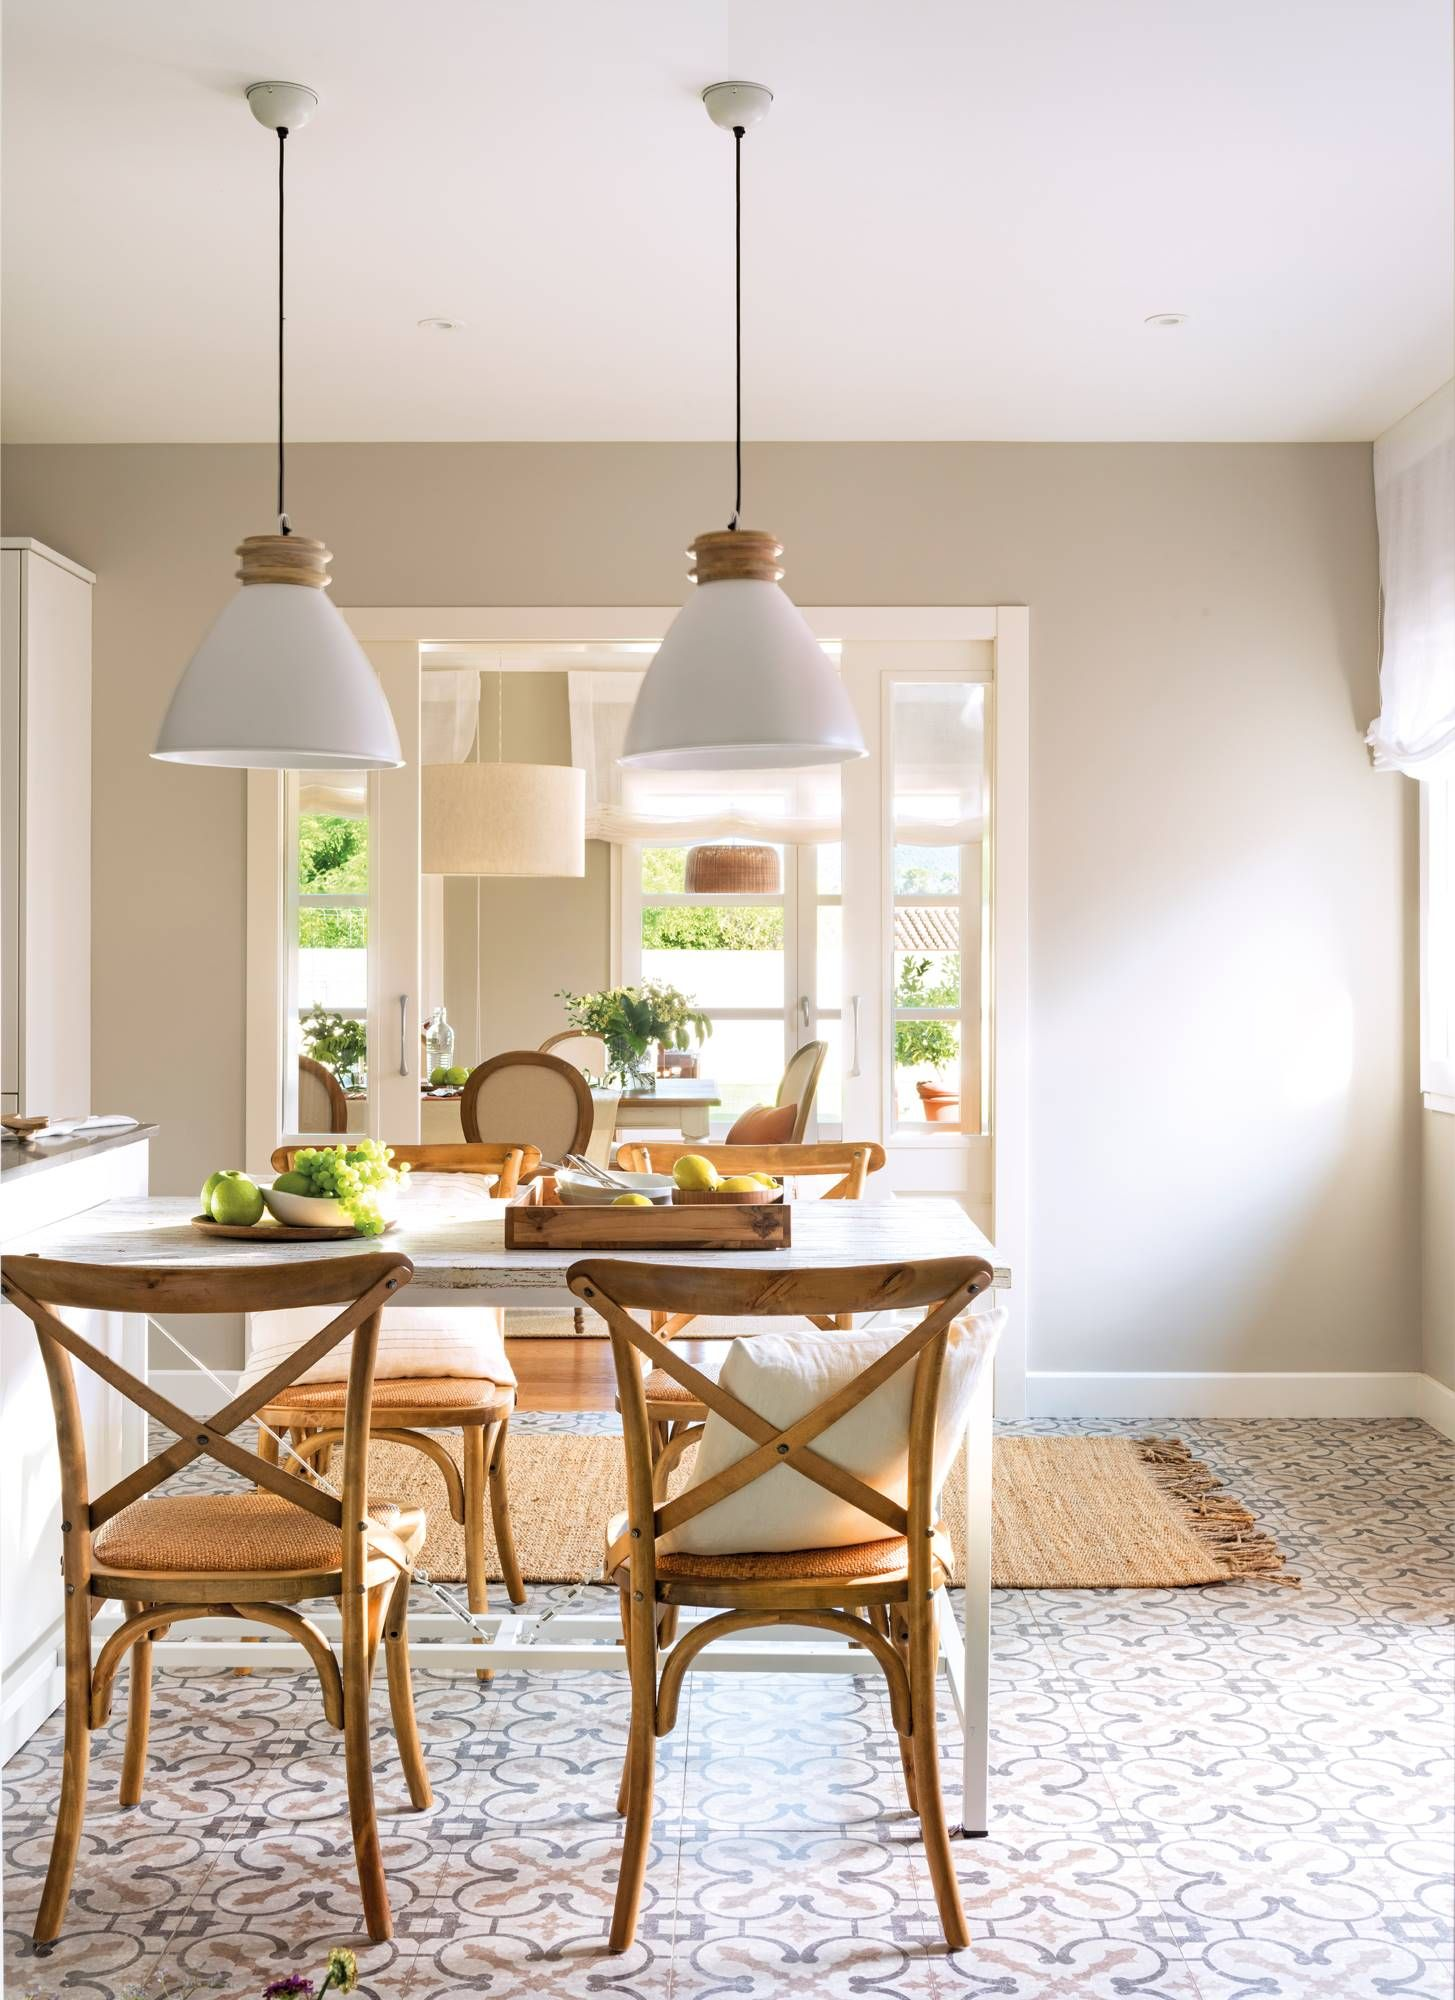 dining room, patterned floor, white wooden table, wooden chairs, white pendants, rattan tug